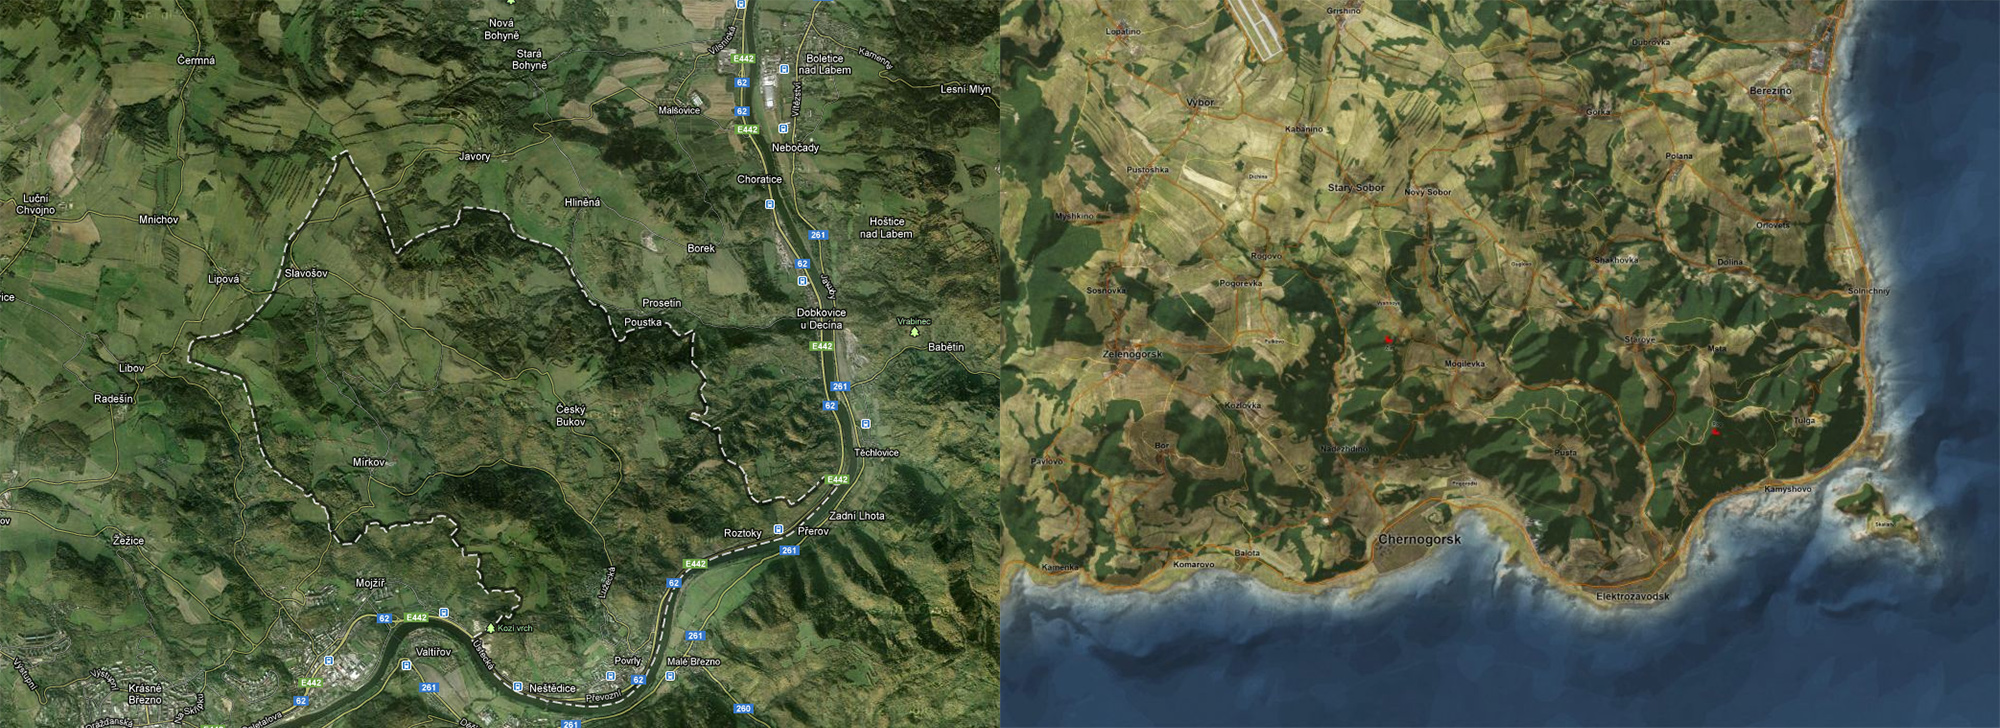 Dayz Interactive Map on